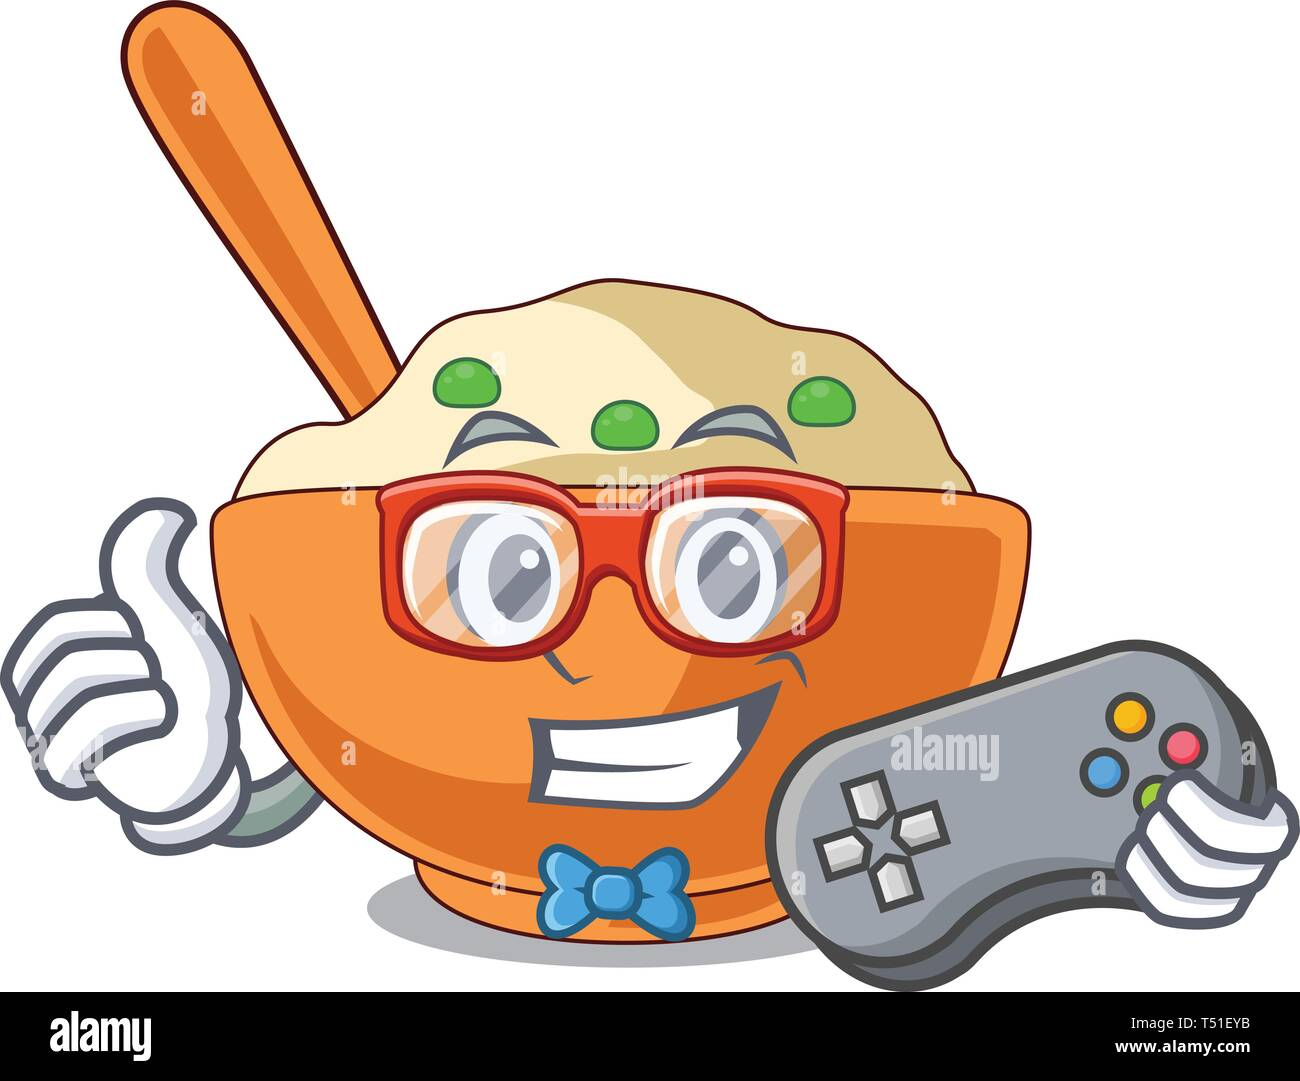 Gamer mashed potato in the shape mascot - Stock Image